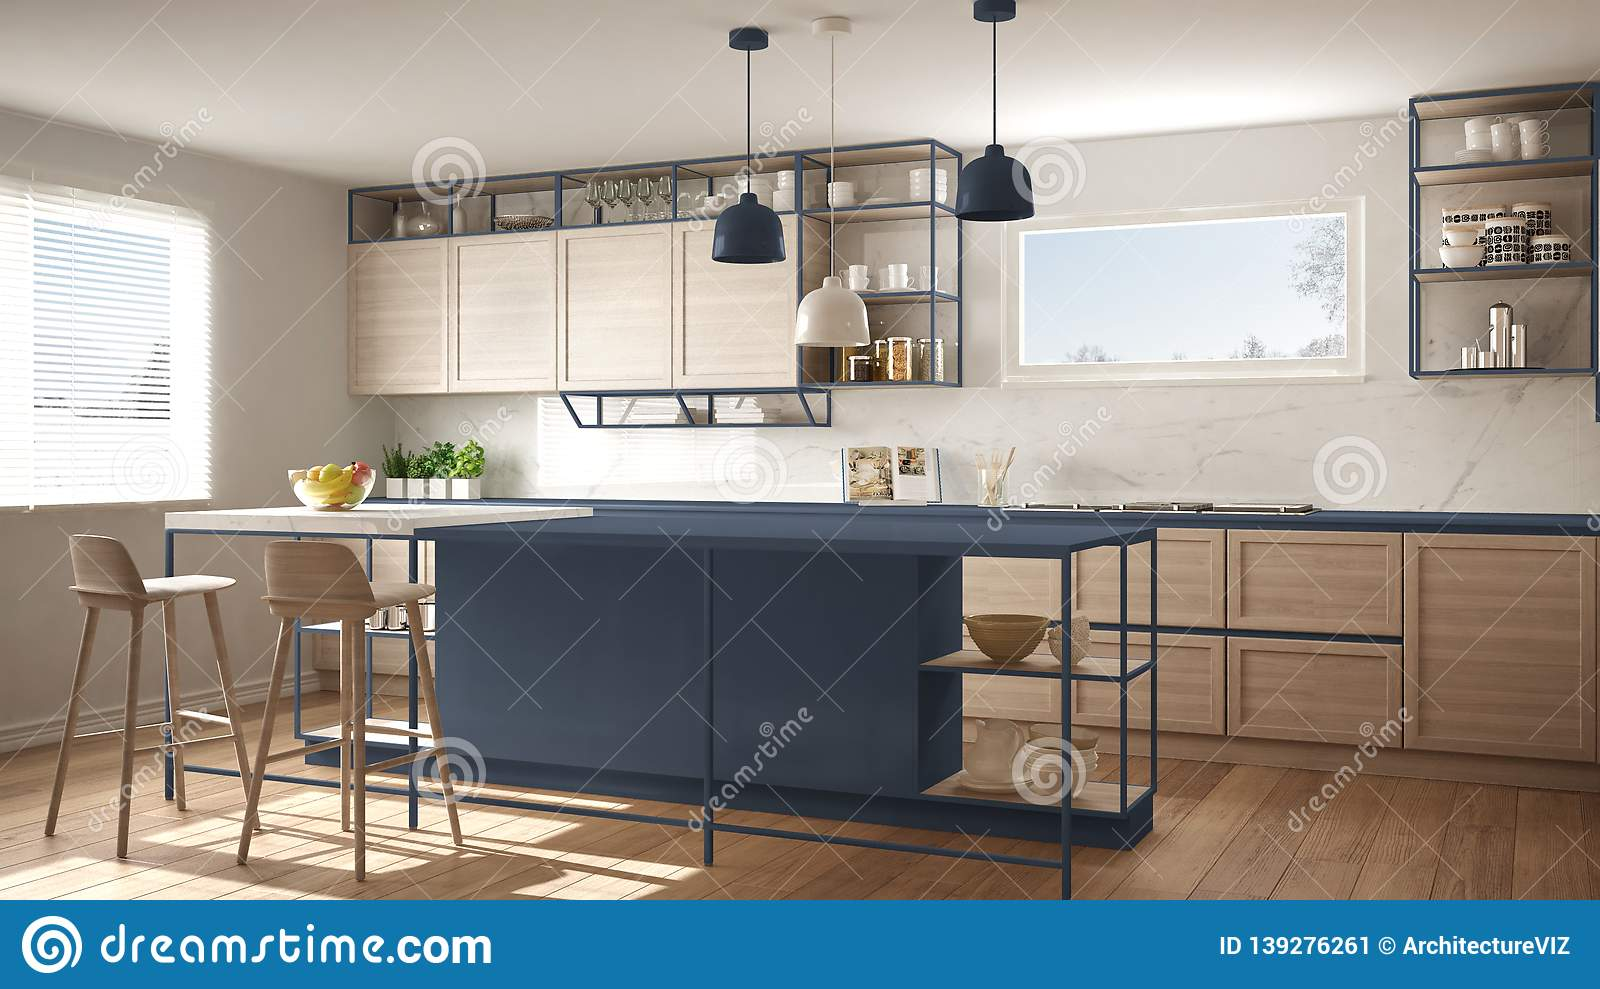 Modern White And Blue Kitchen With Wooden Details And Parquet Floor Modern Pendant Lamps Minimalistic Interior Design Concept Stock Image Image Of Bright Empty 139276261